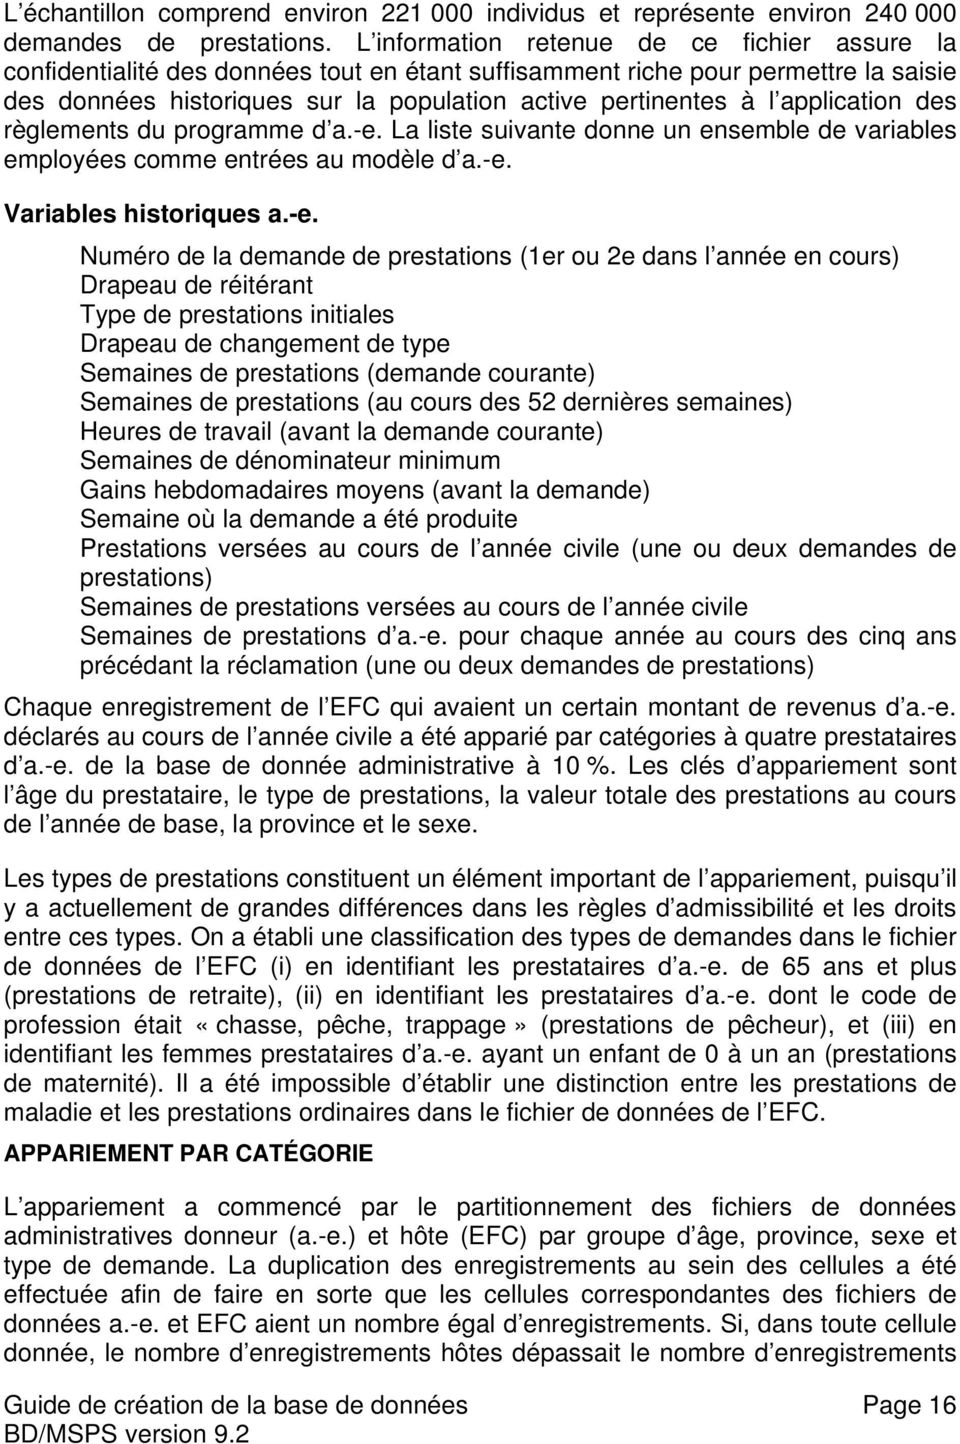 application des règlements du programme d a.-e.